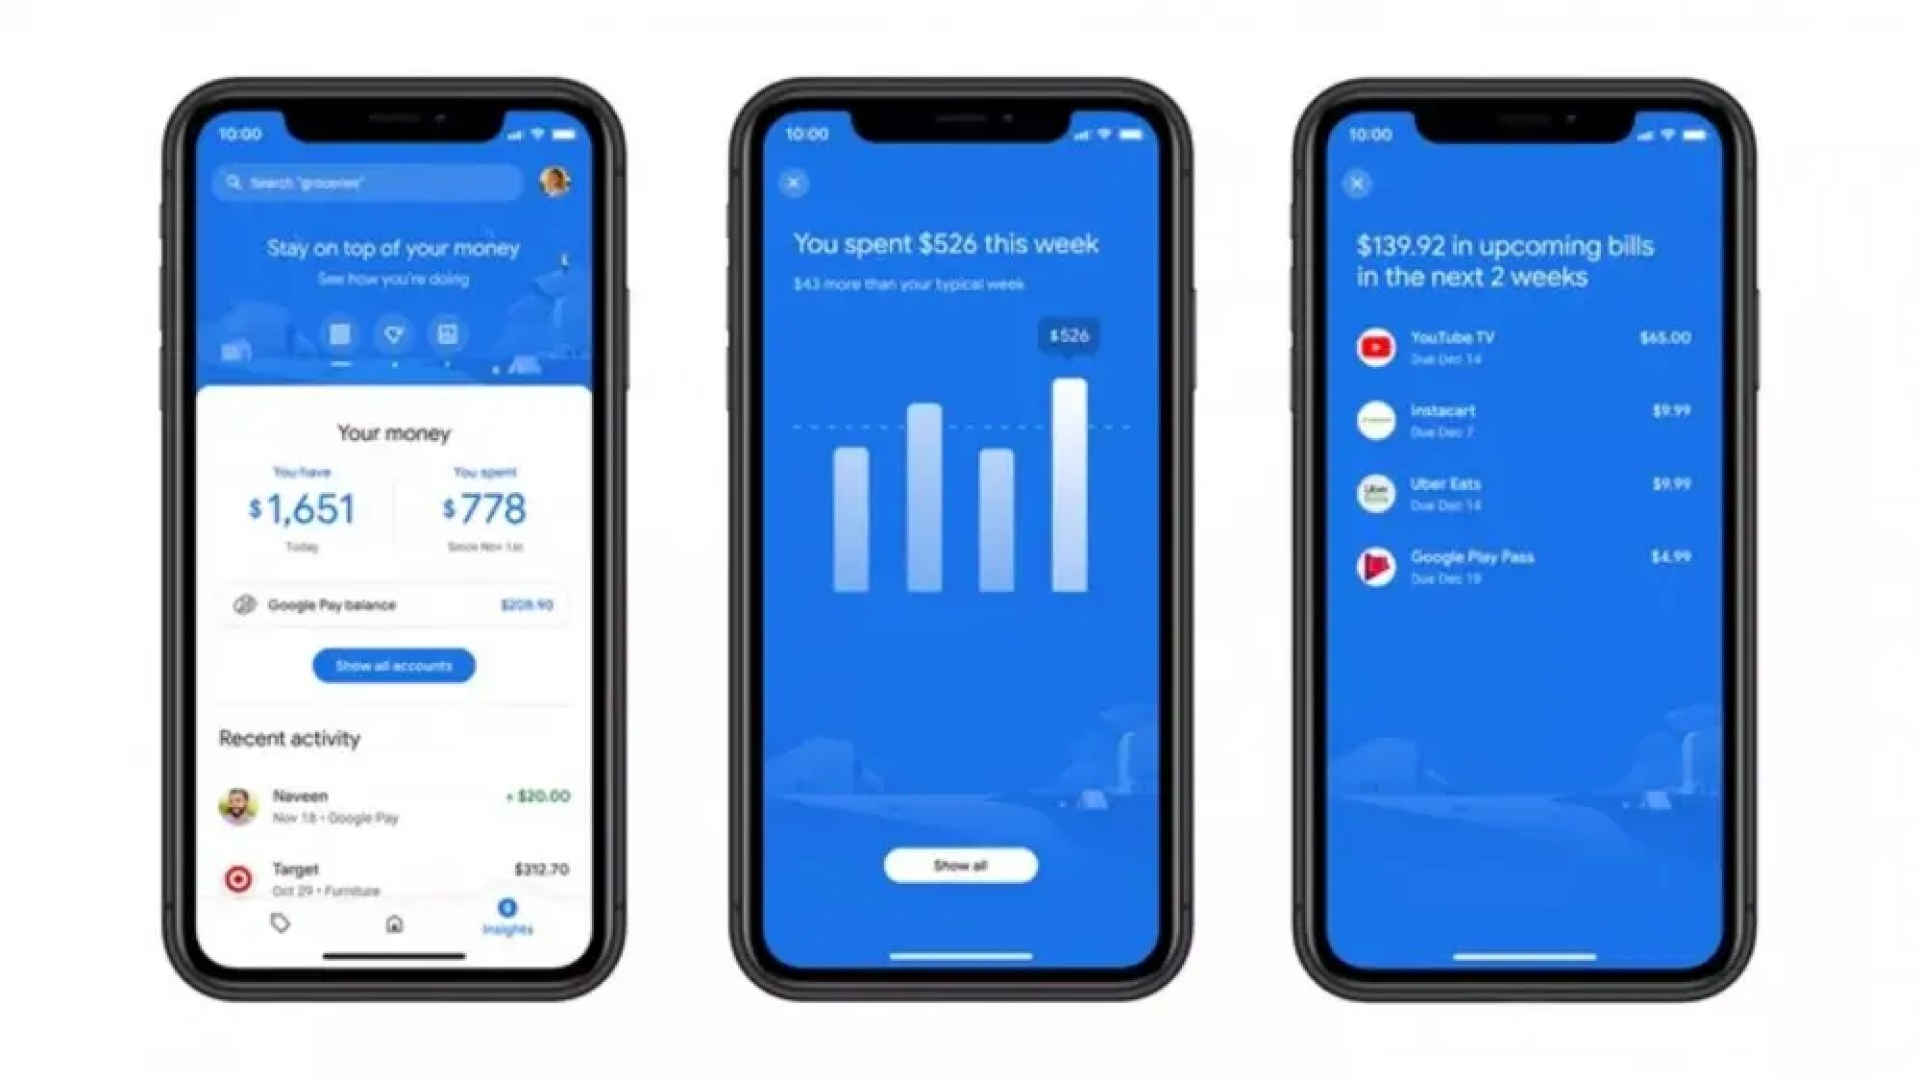 Google Pay spending tools